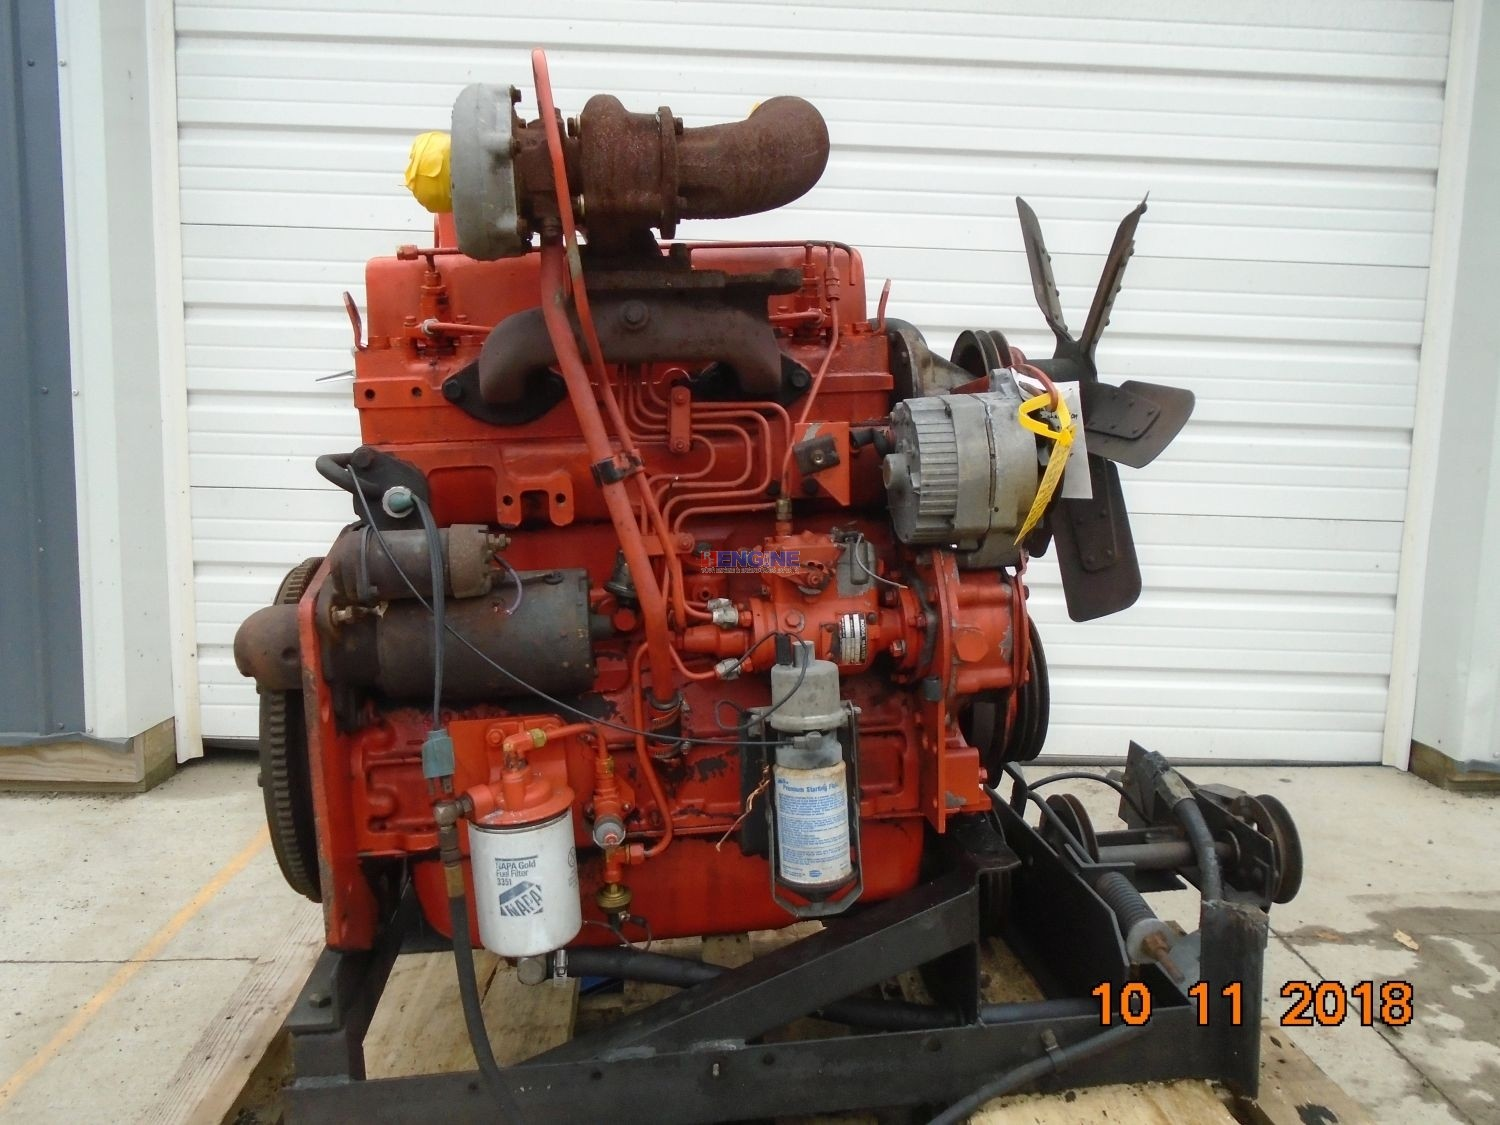 R. F. Engine Allis Chalmers 433I, 200T Engine Complete Runner ESN: 33-01954, Catalog#: 400780